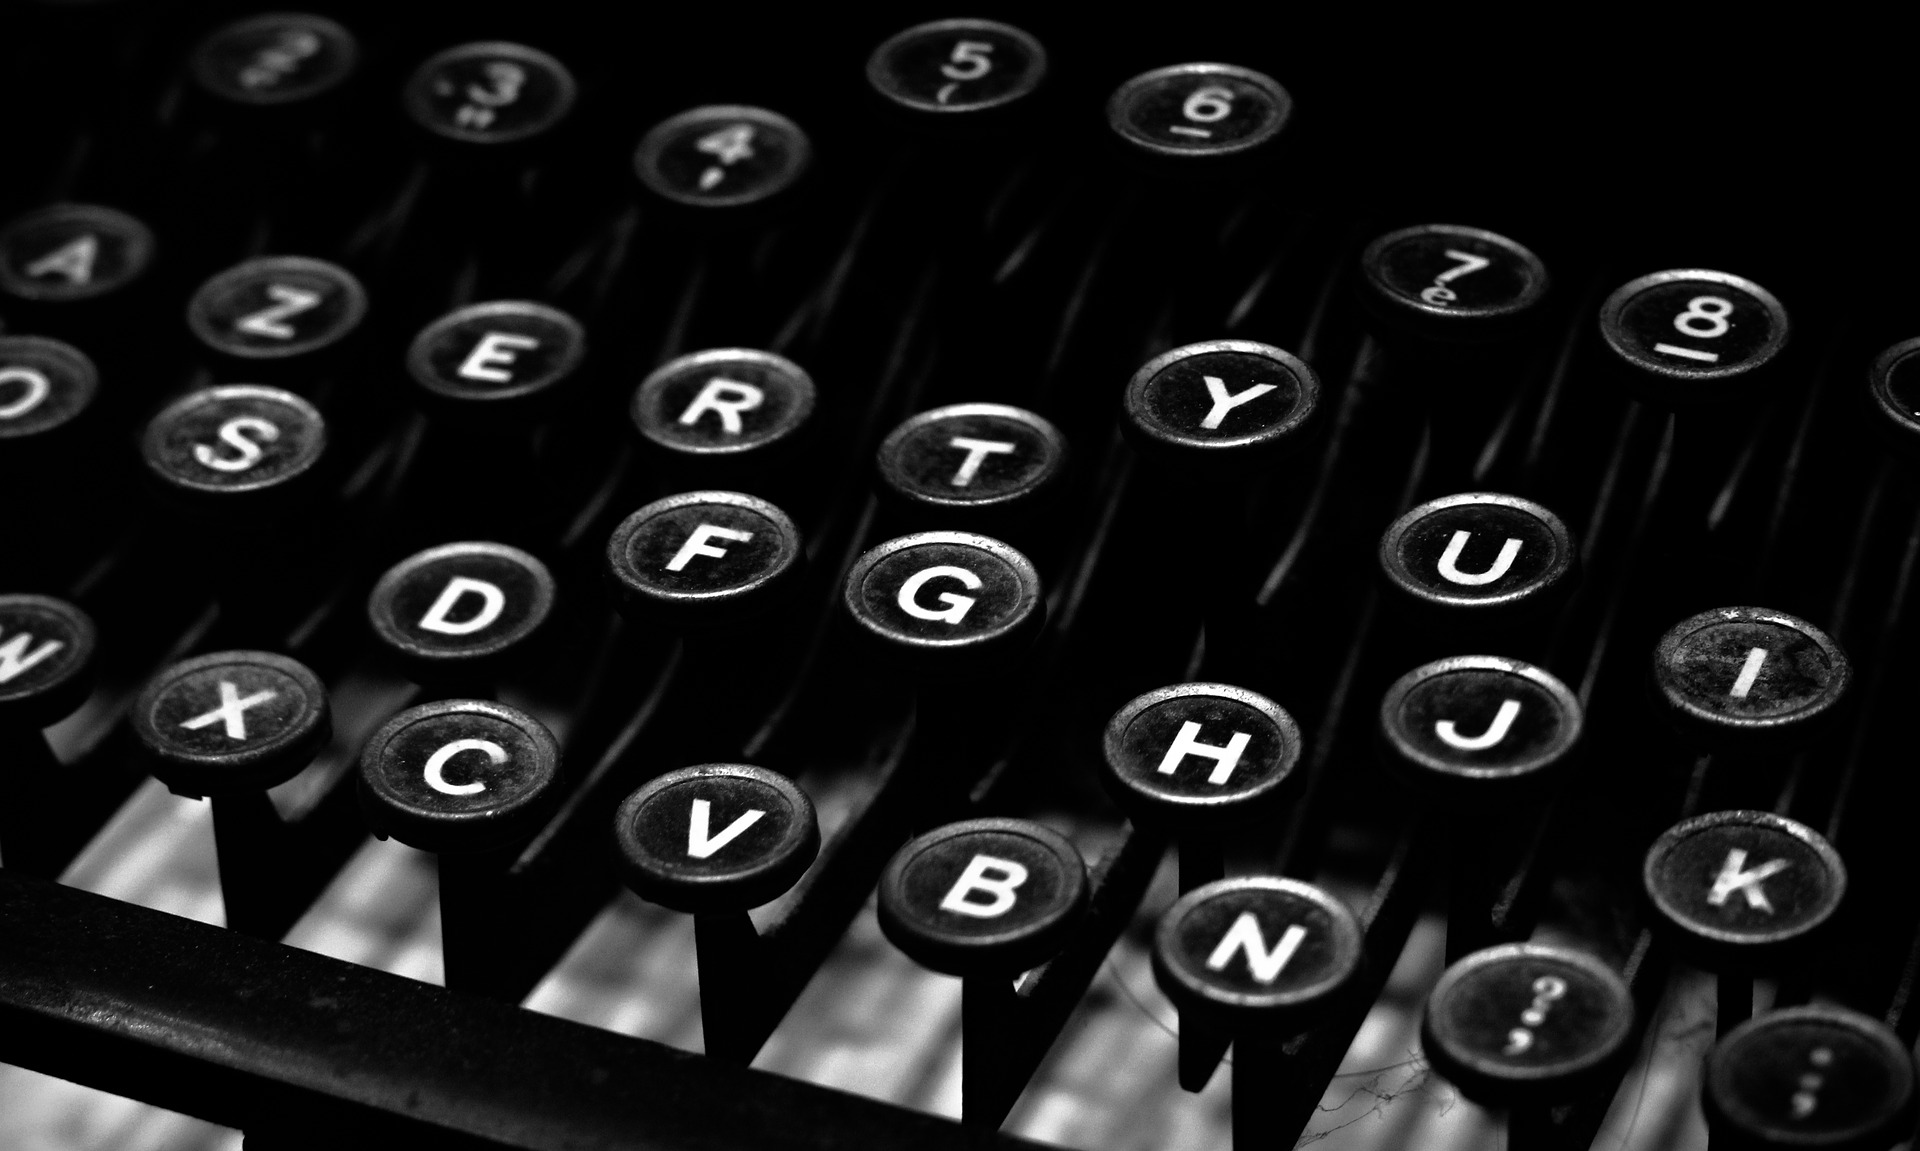 John Mueller talks about content, word count, and search rankings